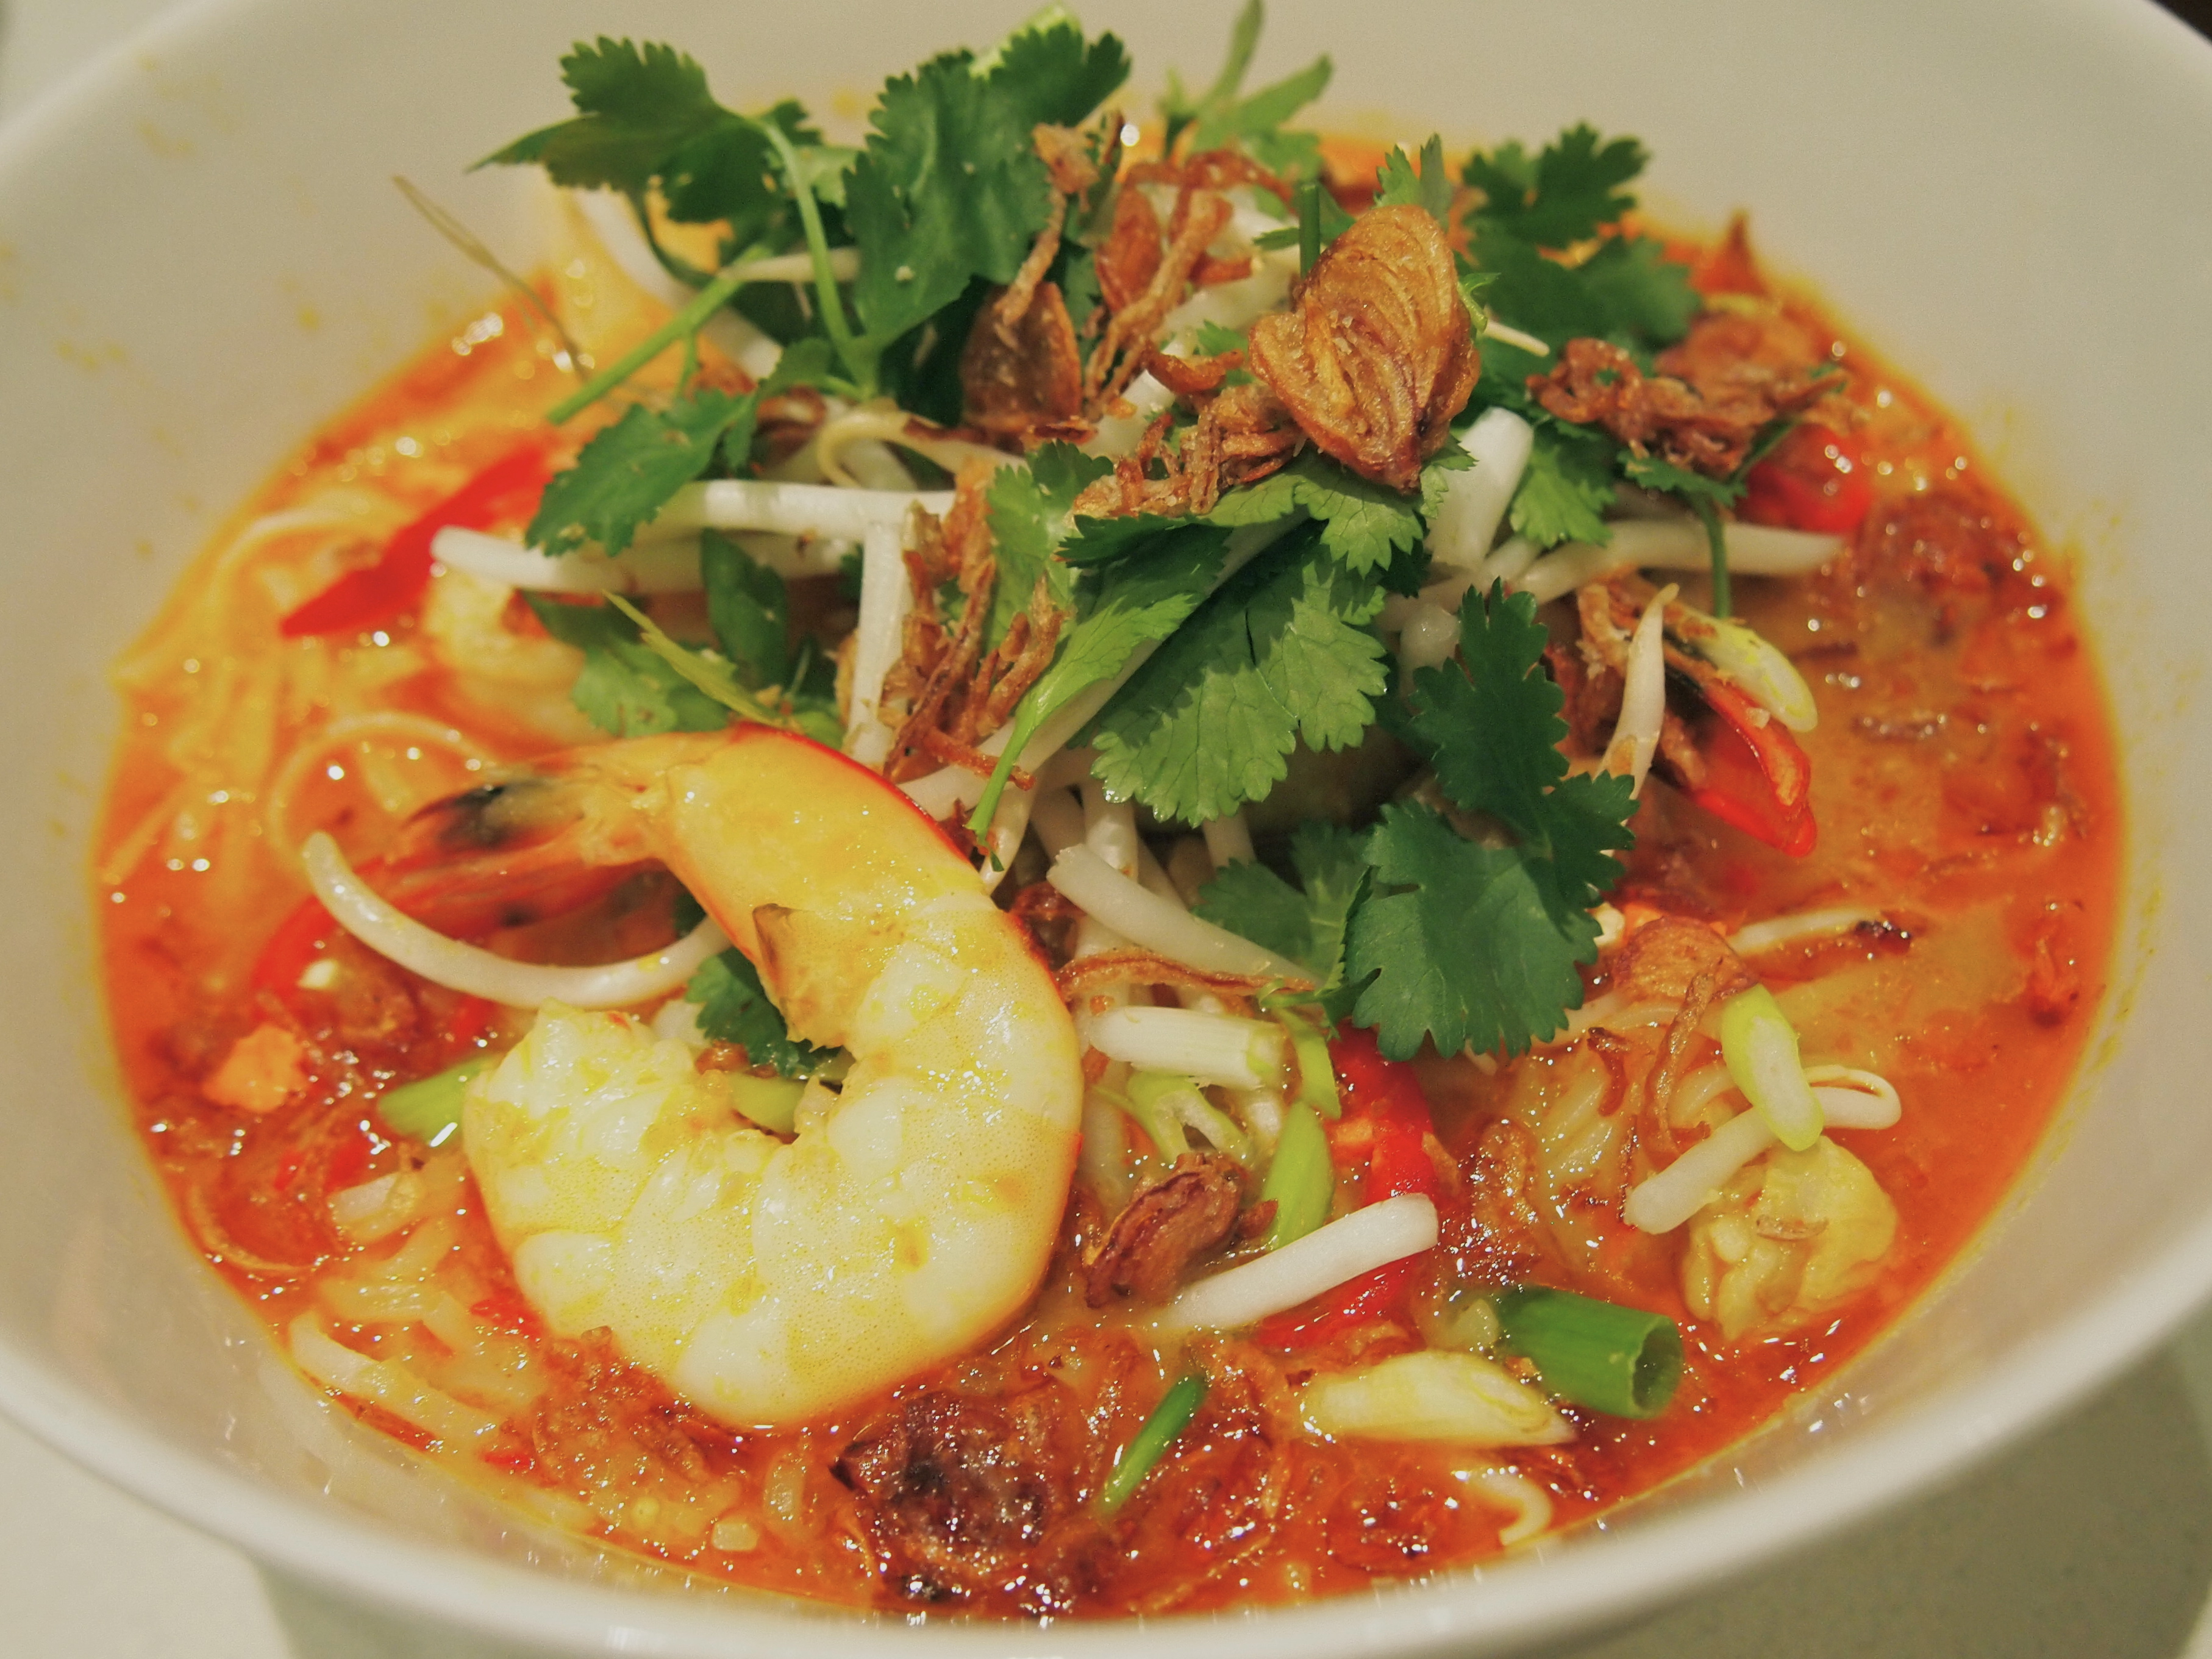 Food from the World: Laksa Soup